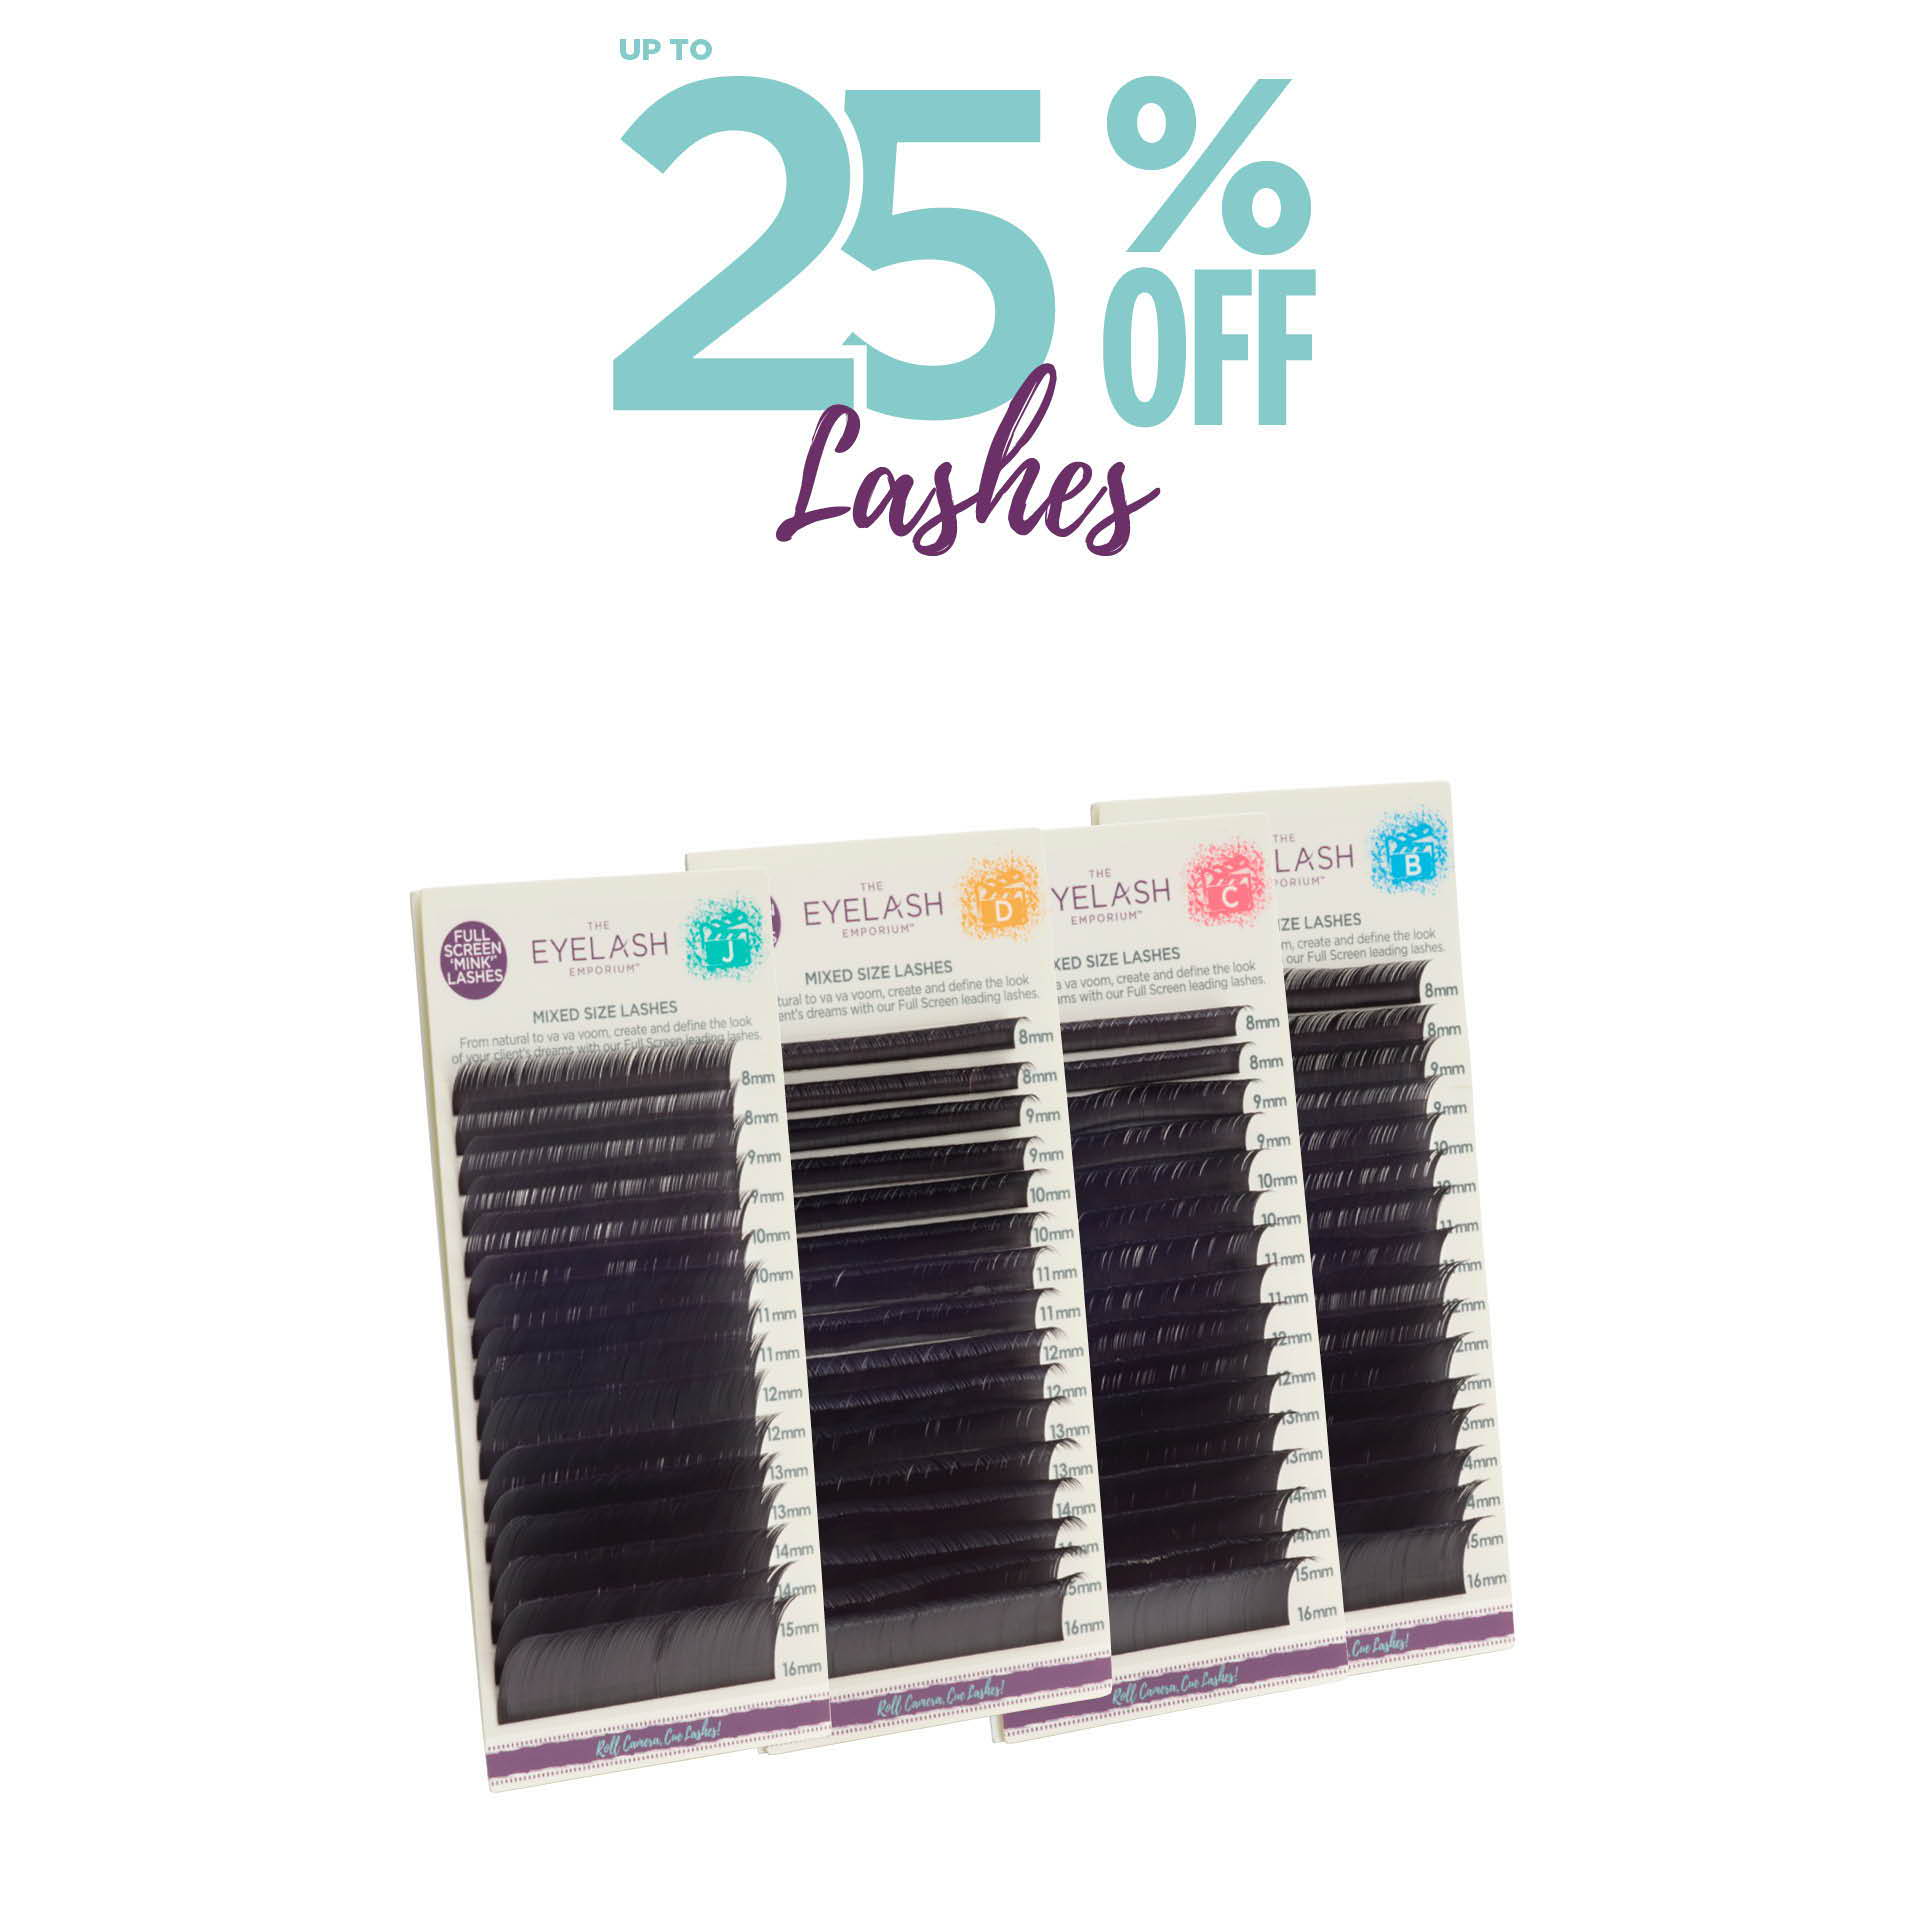 Up to 25% off lashes